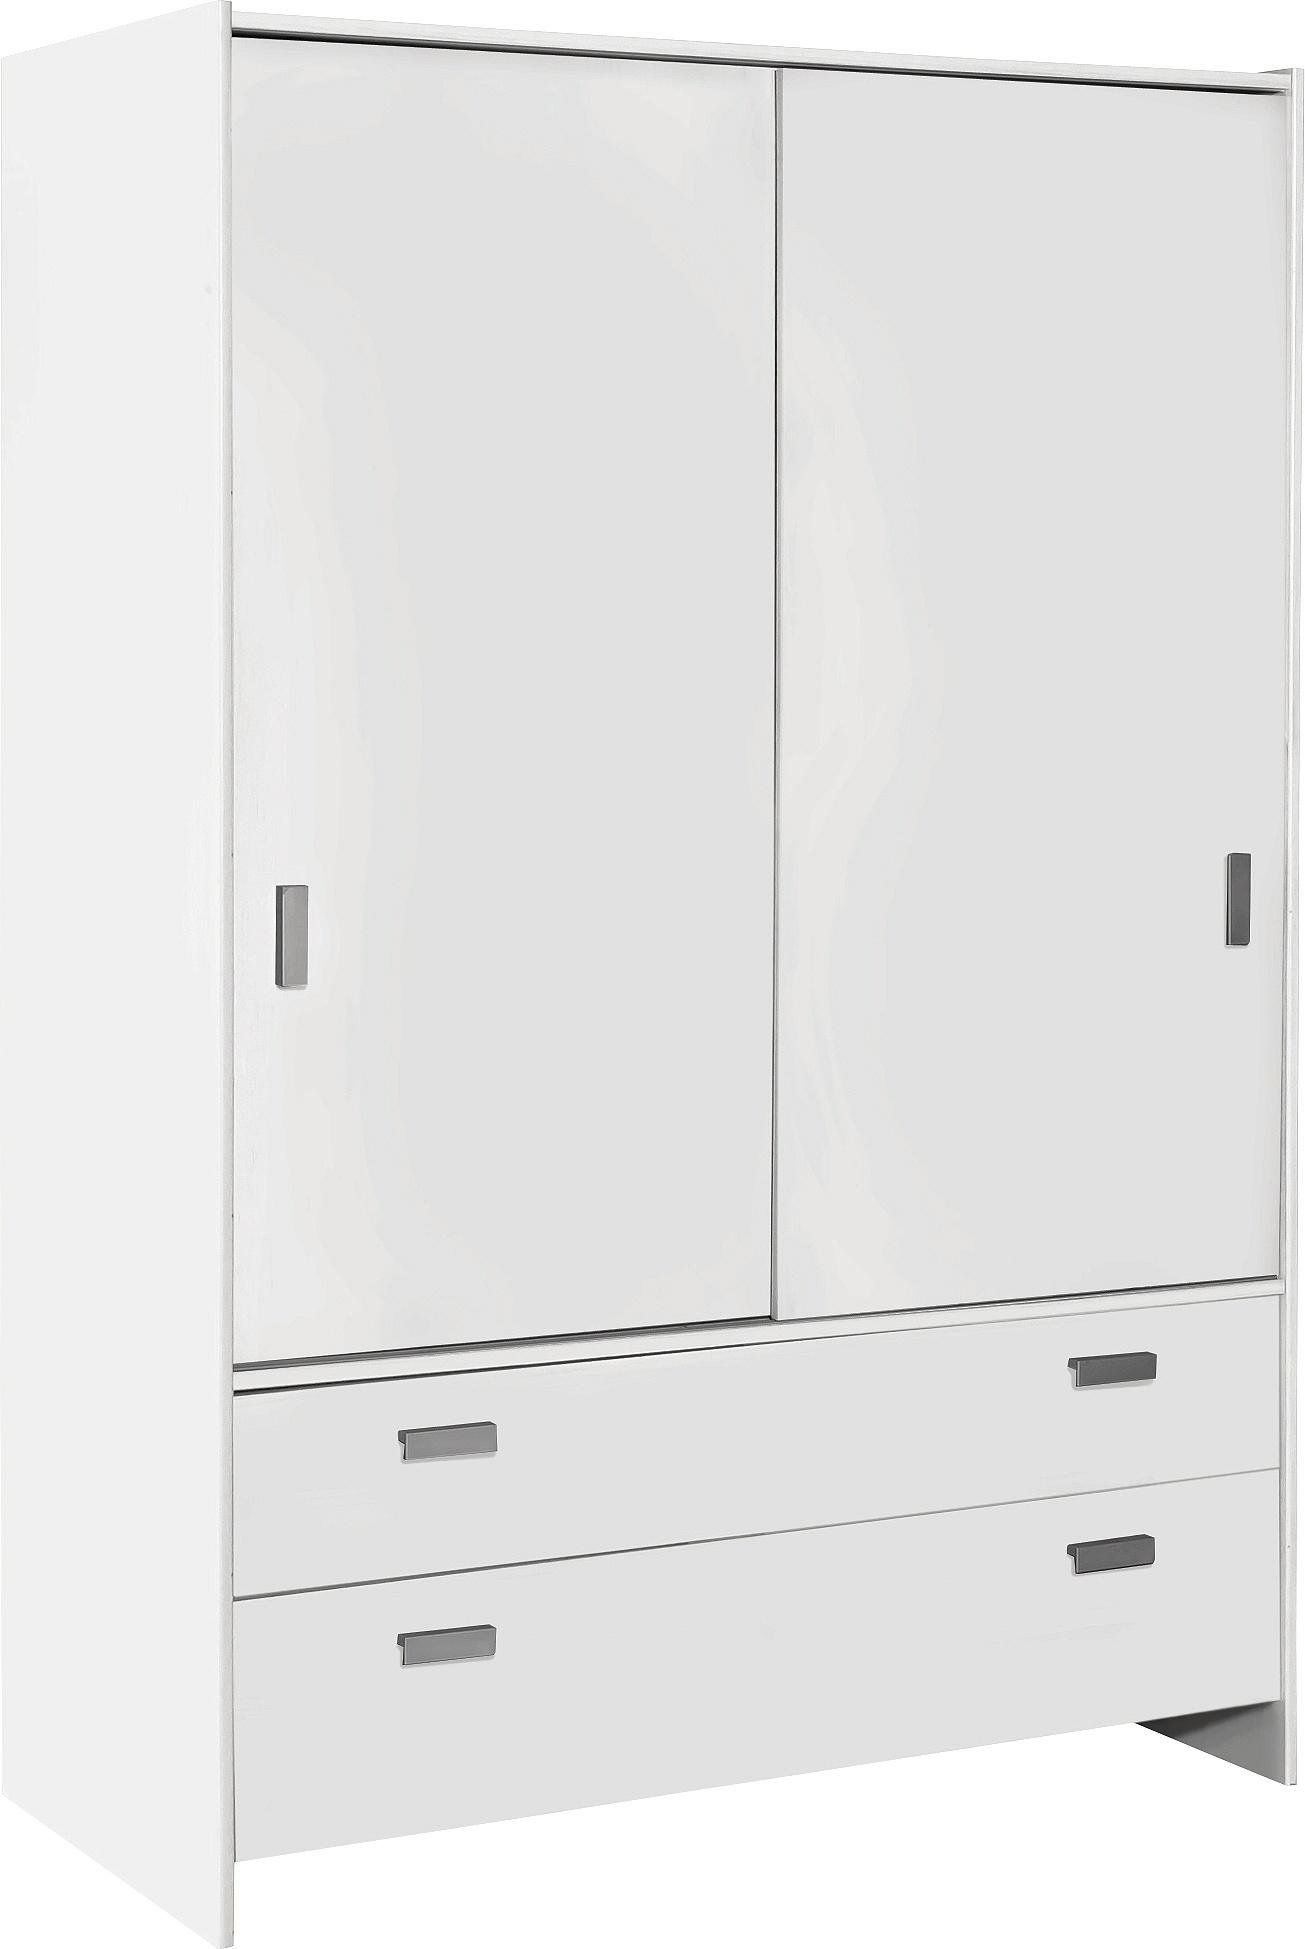 White Wardrobe With Drawers Https Www Otoseriilan Com In 2020 Wardrobe Drawers White Gloss Wardrobes Mirrored Wardrobe Doors